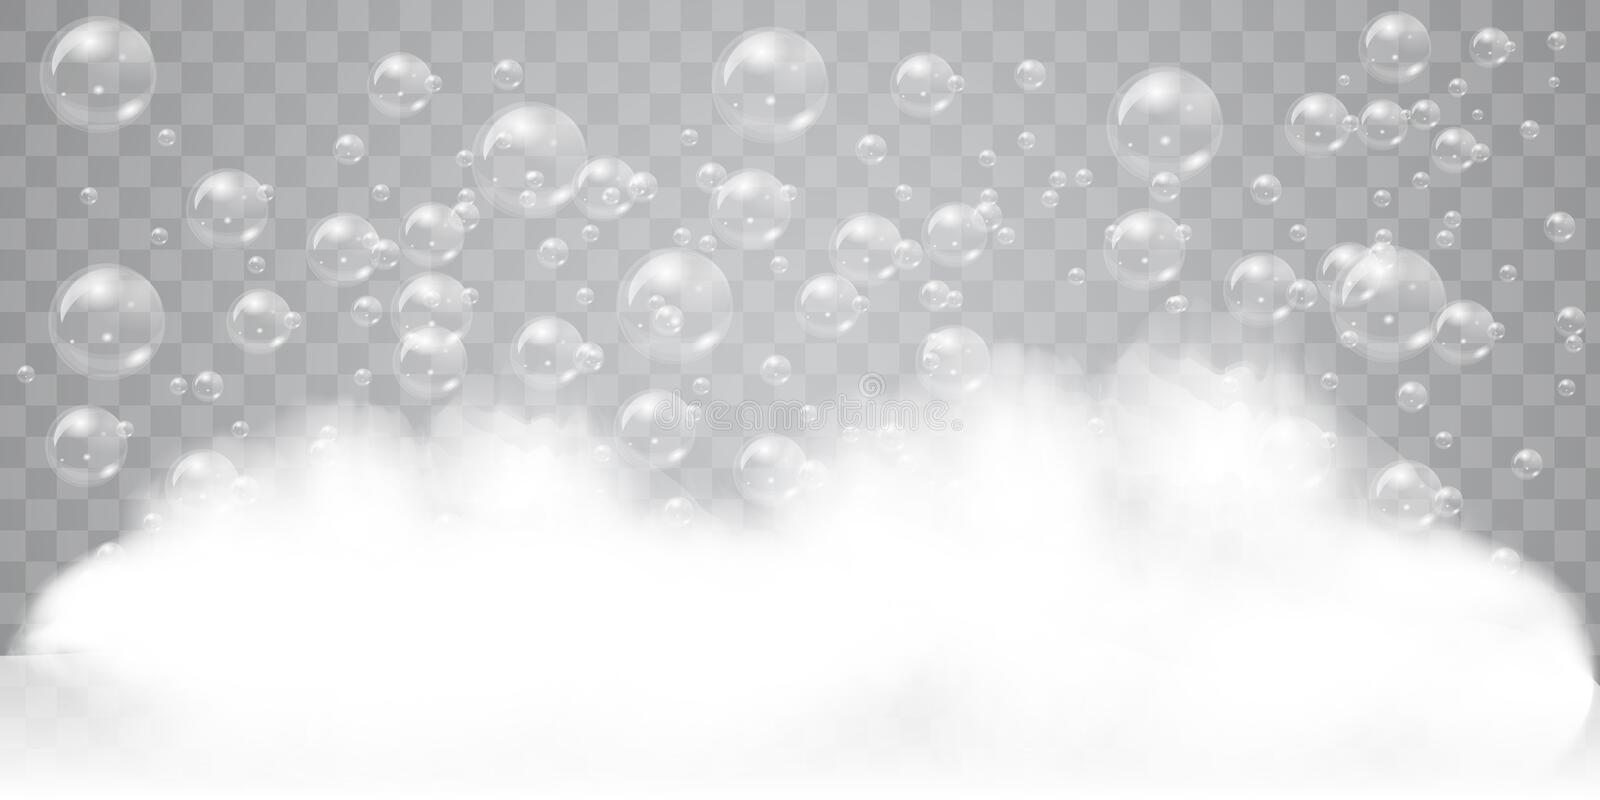 Soap foam with realistic bubbles background for your design. Bath laundry detergent or shampoo concept. Vector royalty free illustration